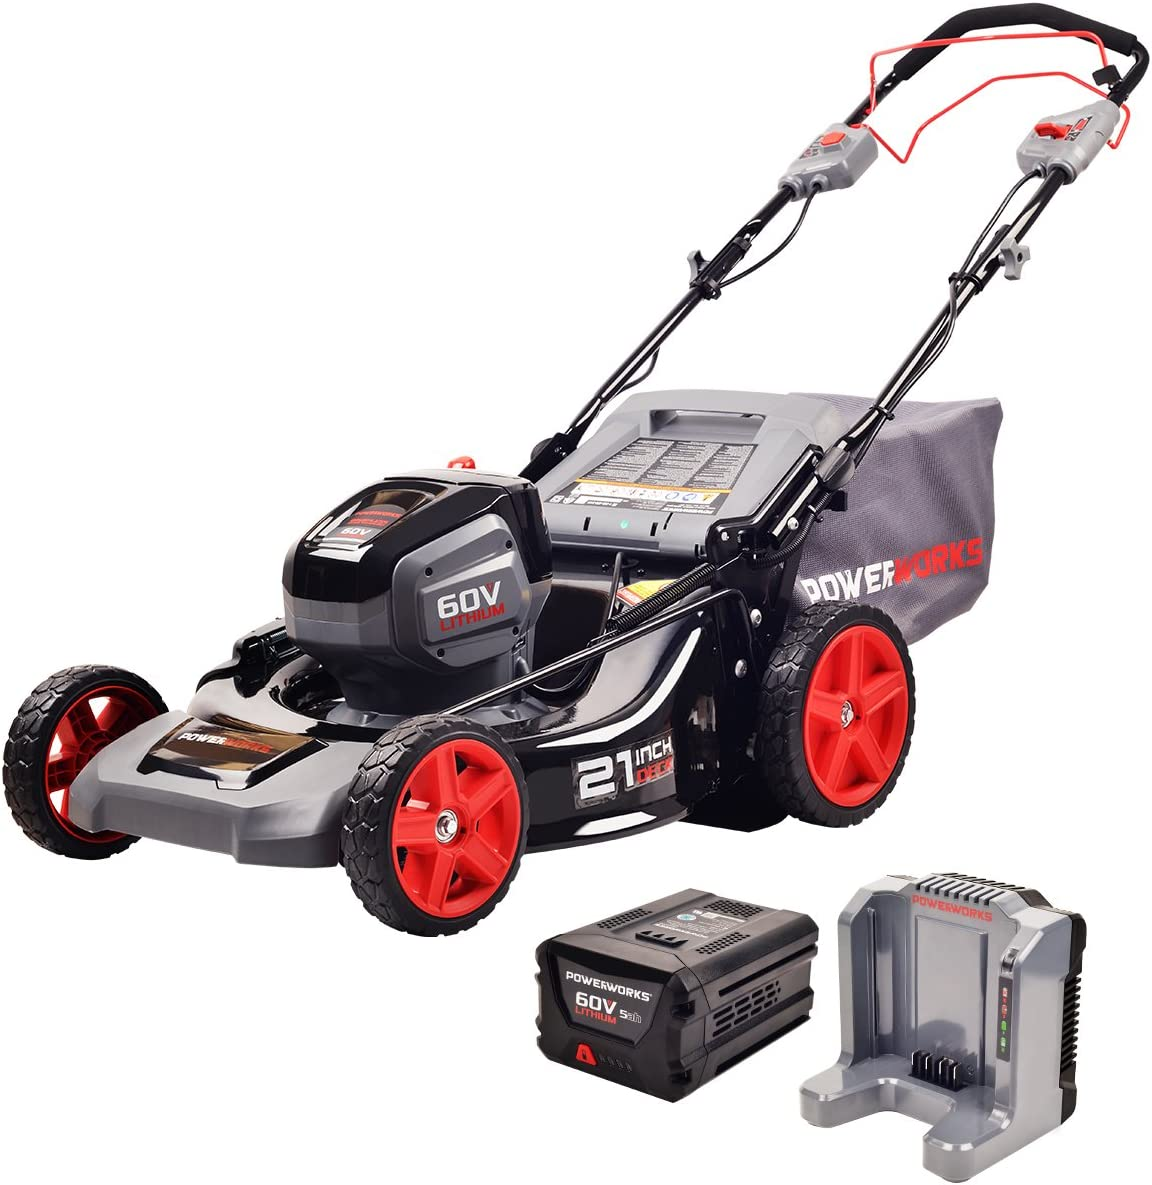 POWERWORKS 60V 21-inches SP Mower, MO60L512PW